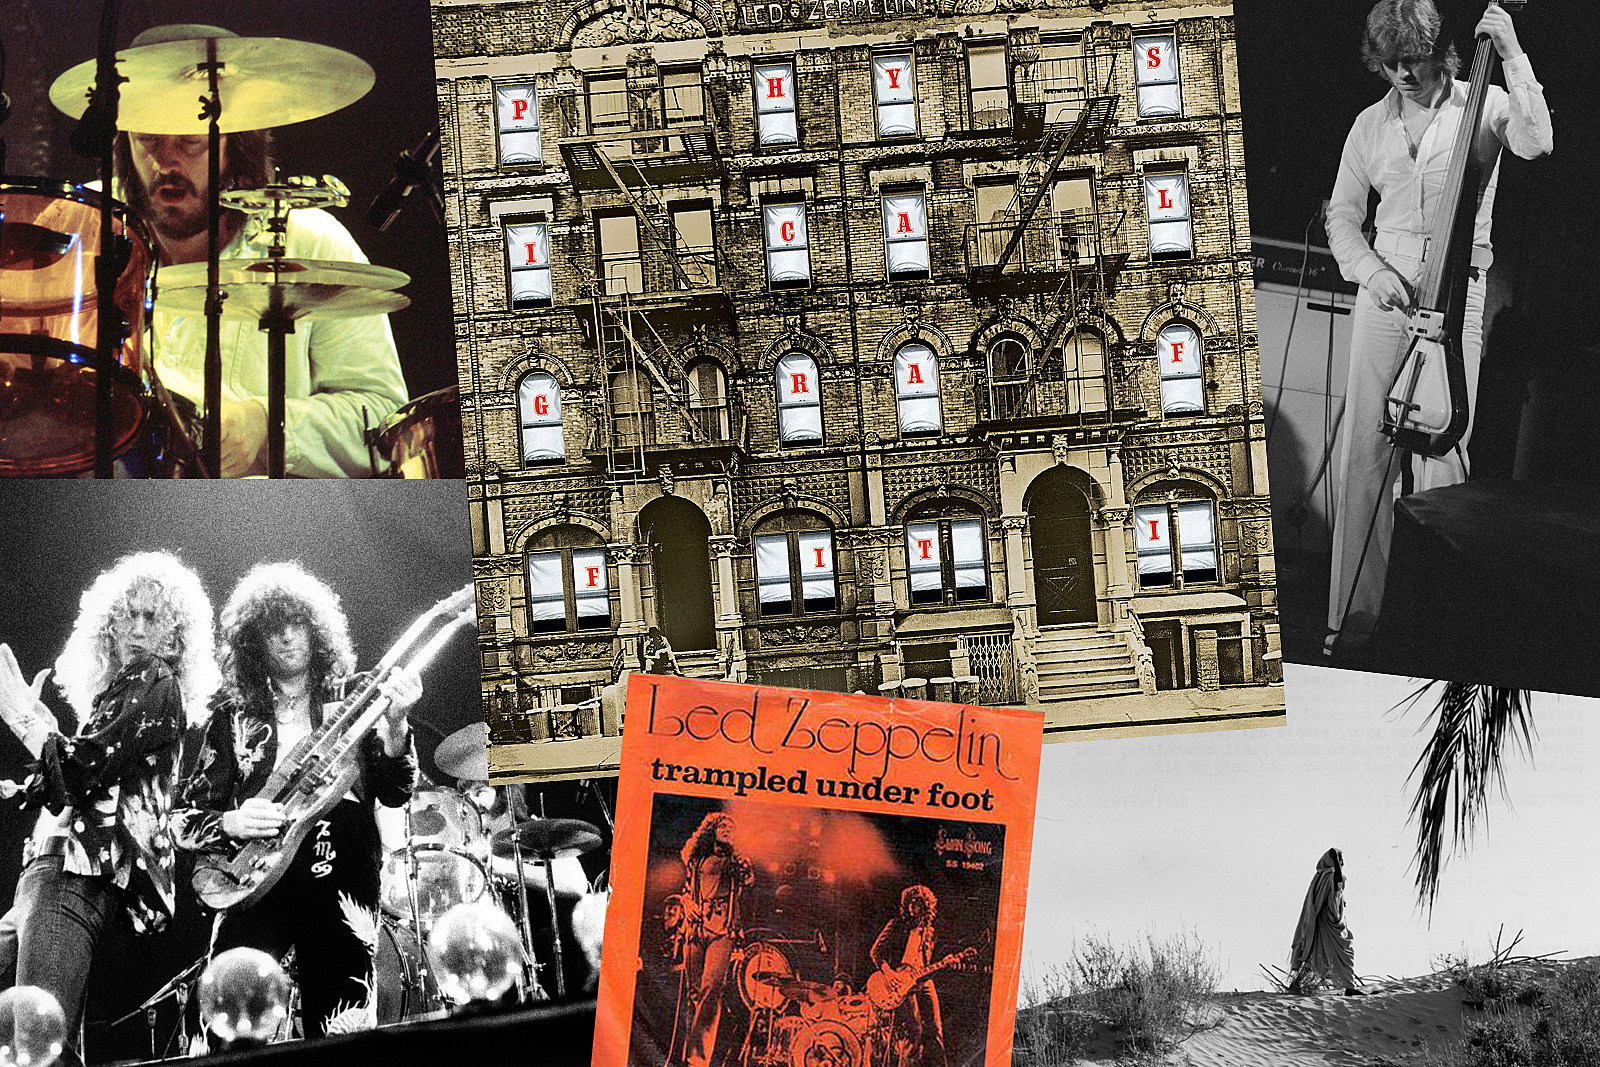 Led Zeppelin's 'Physical Graffiti' at 45: A Track-by-Track Guide